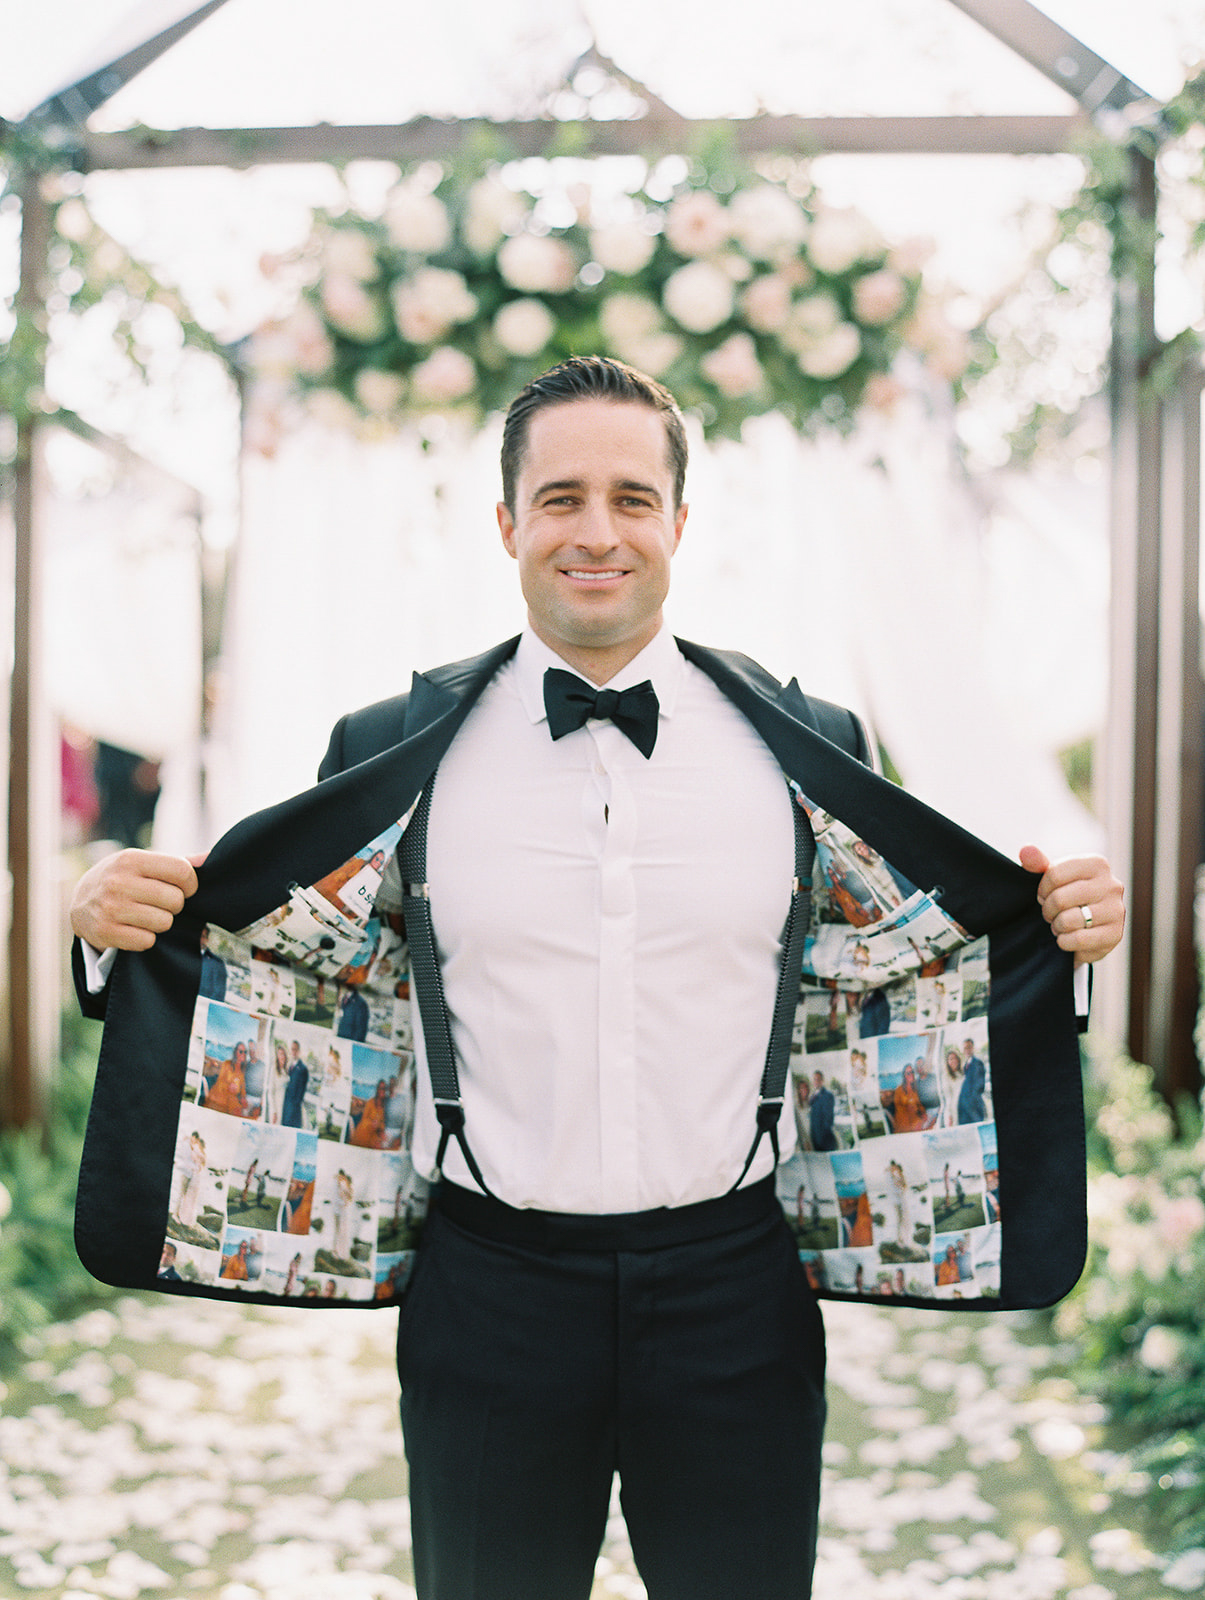 groom holding open suit jacket to show pictures of couple on inside